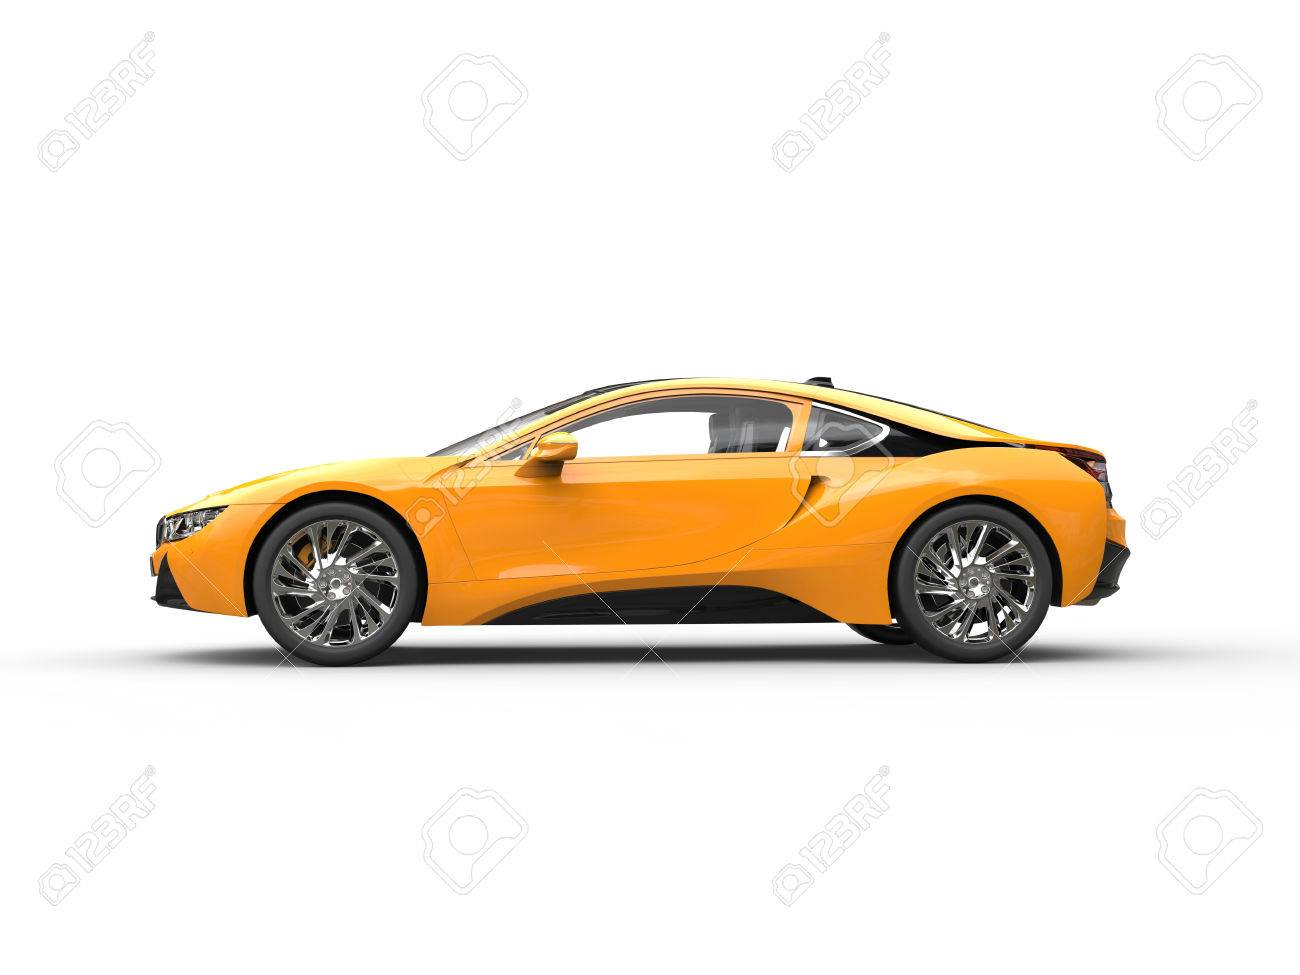 Modern Yellow Sports Car   Side View   Isolated On White Background. Stock  Photo